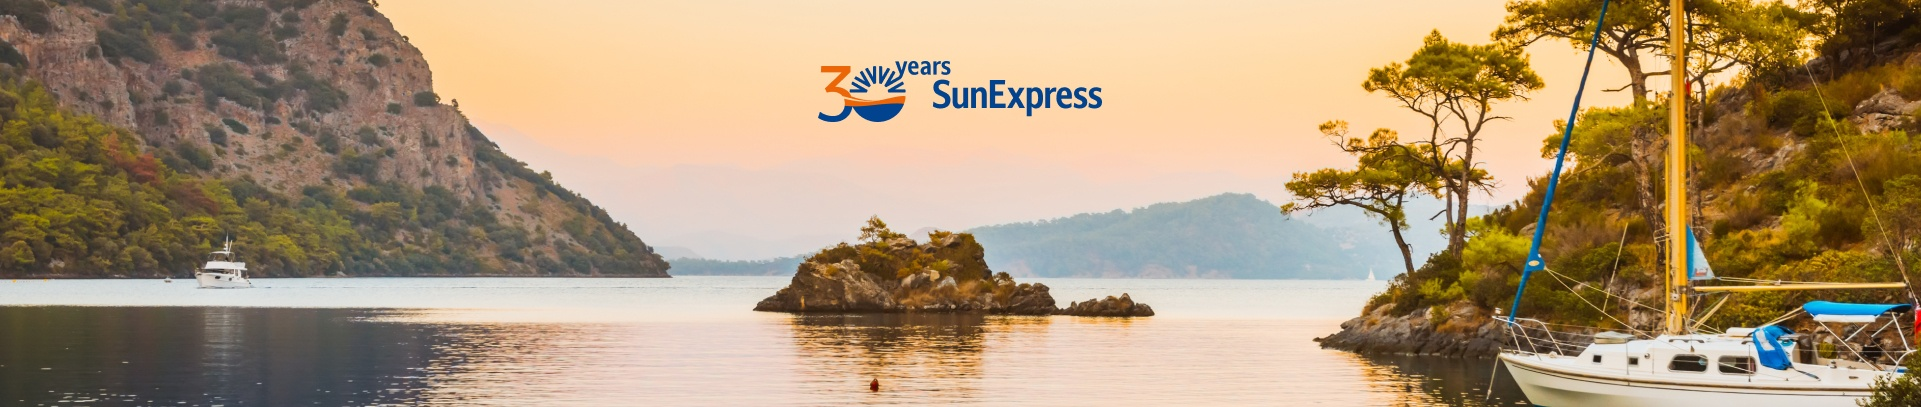 about sunexpress